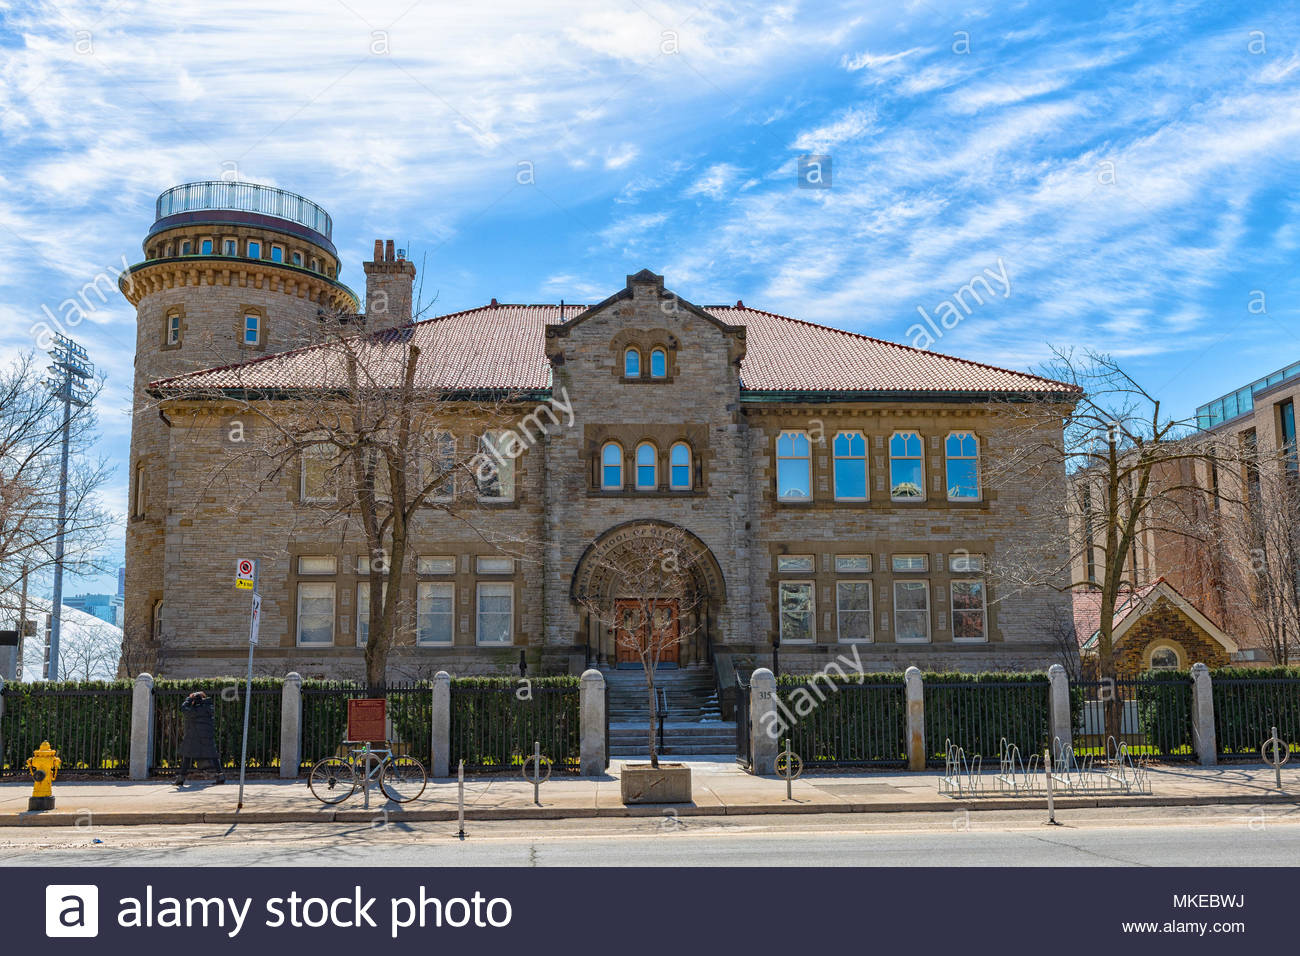 Munk School of Global Affairs, facade or entrance to the old architecture building located in Bloor Street West. - Stock Image